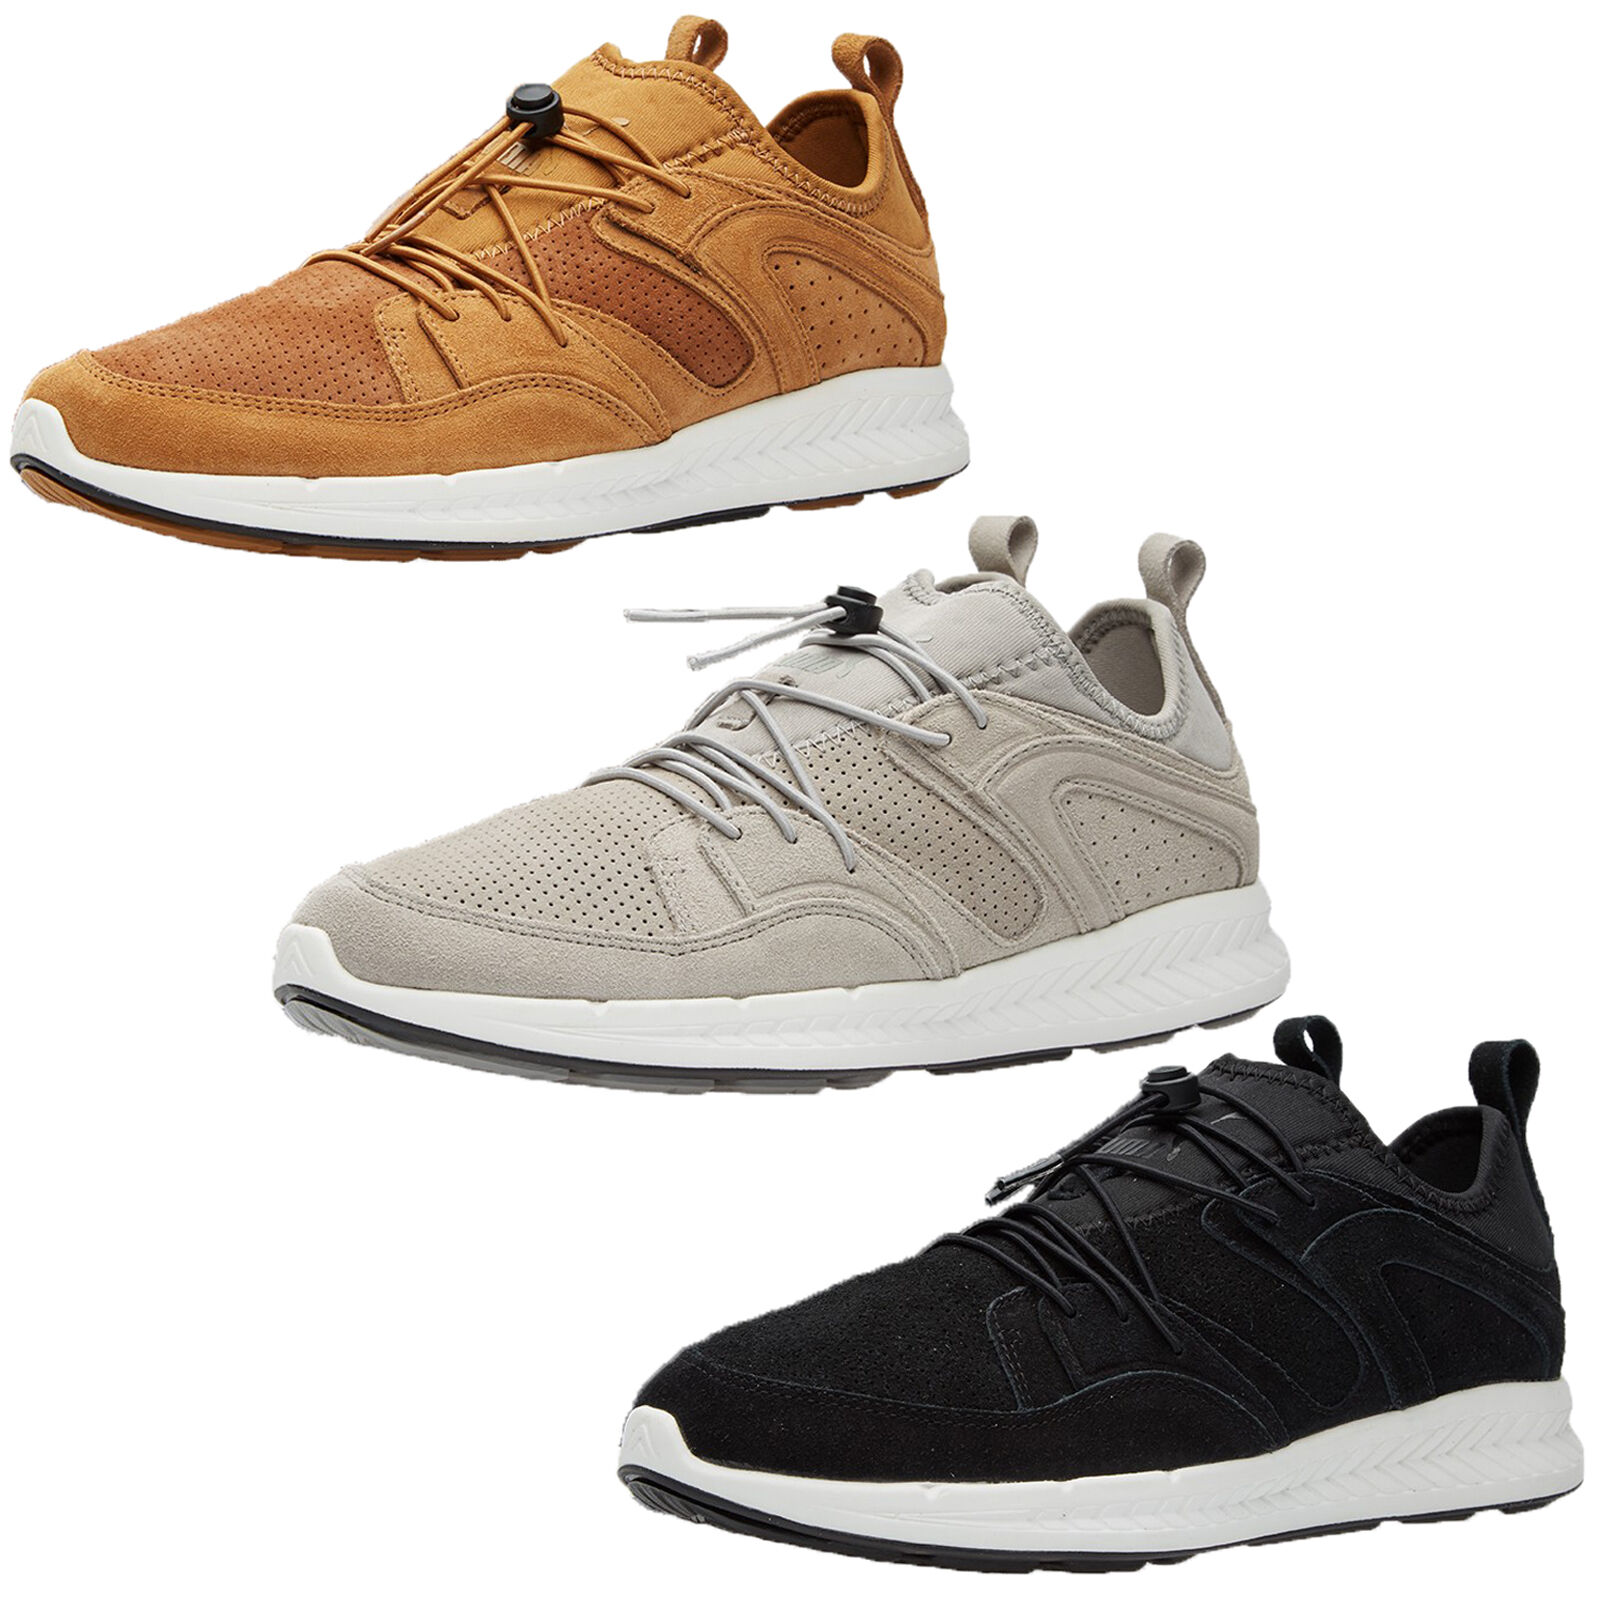 Puma Blaze of Glory Ignite Sneaker Herren Mode Wildleder